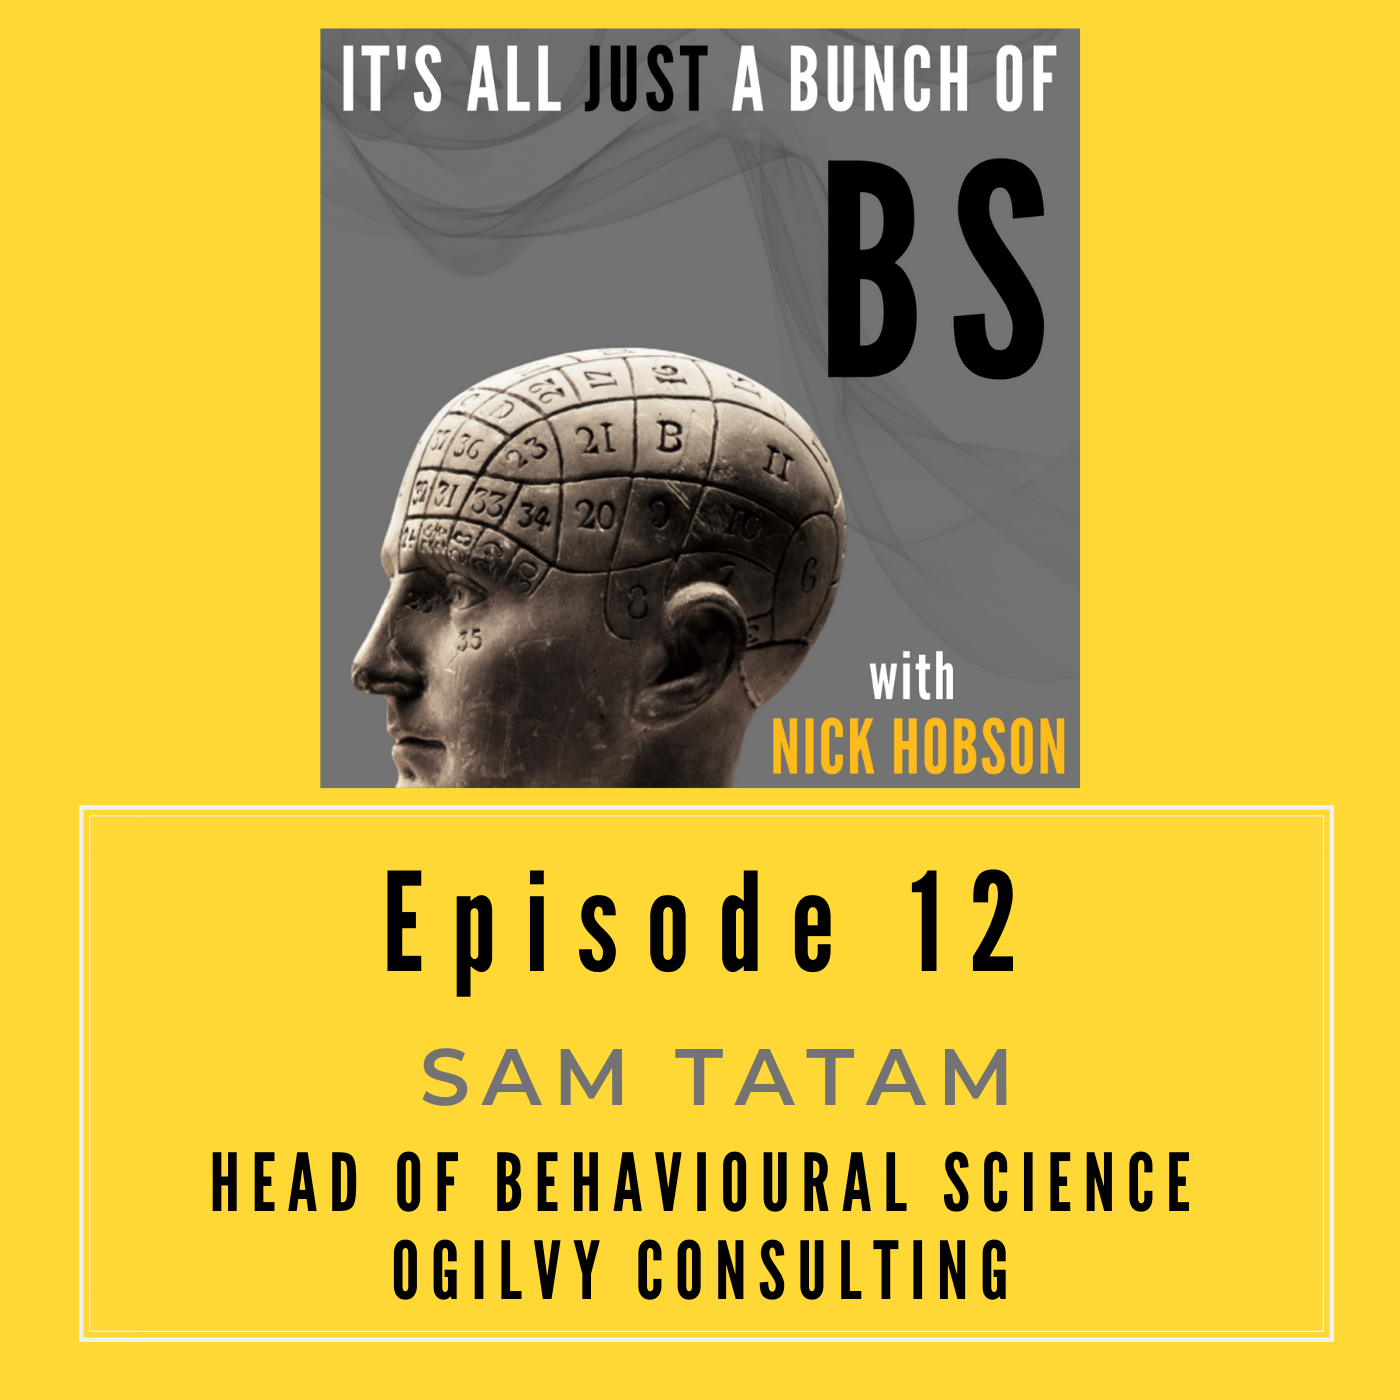 Episode 12 with SAM TATAM: Working Towards a More Robust Understanding of Human Behavior